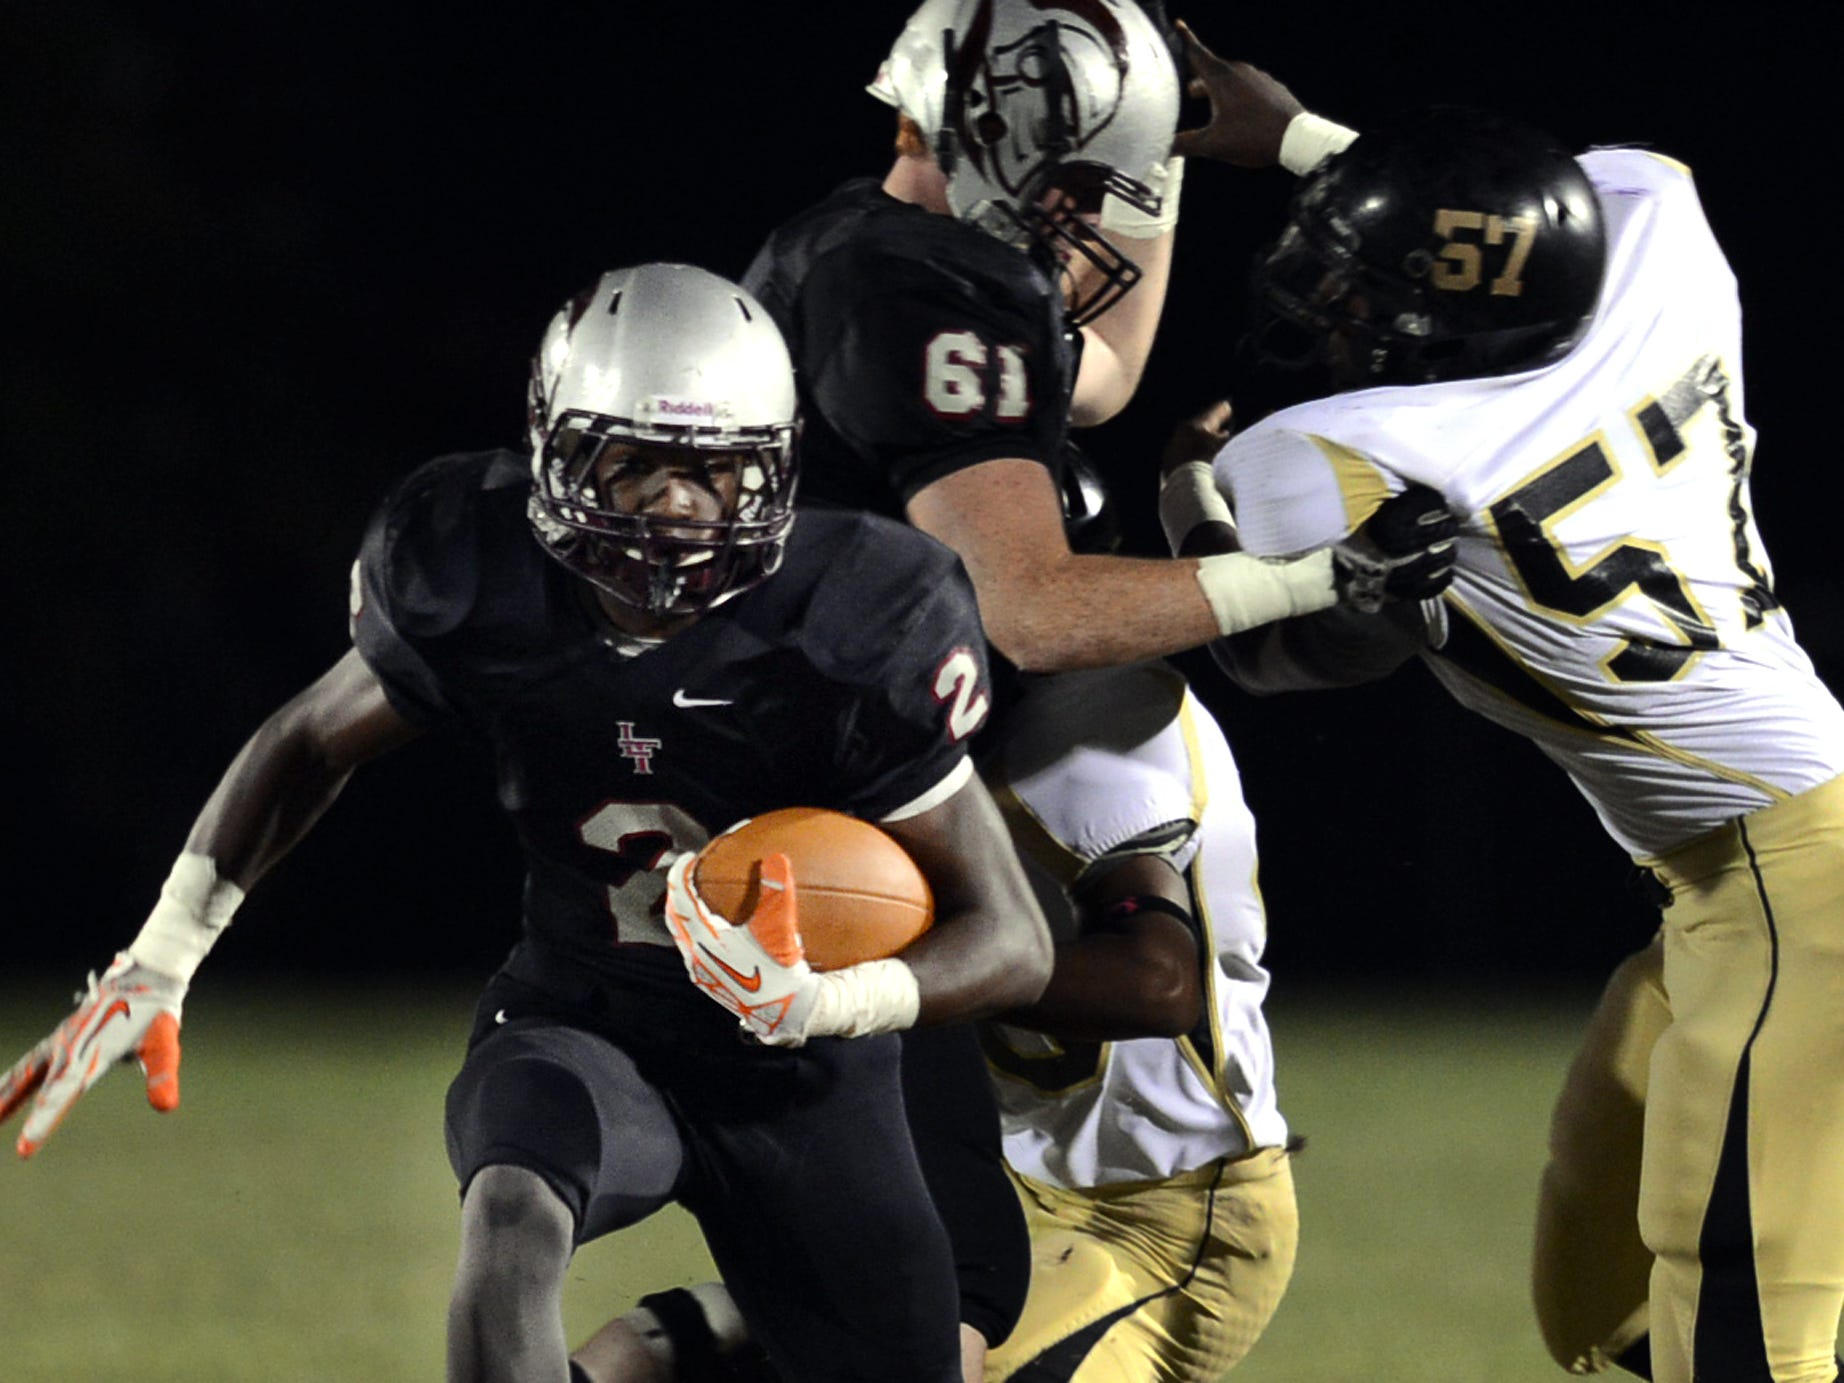 Liberty Tech's Devin Bush will be a key contributor Friday night if Liberty is going to beat Henry County.